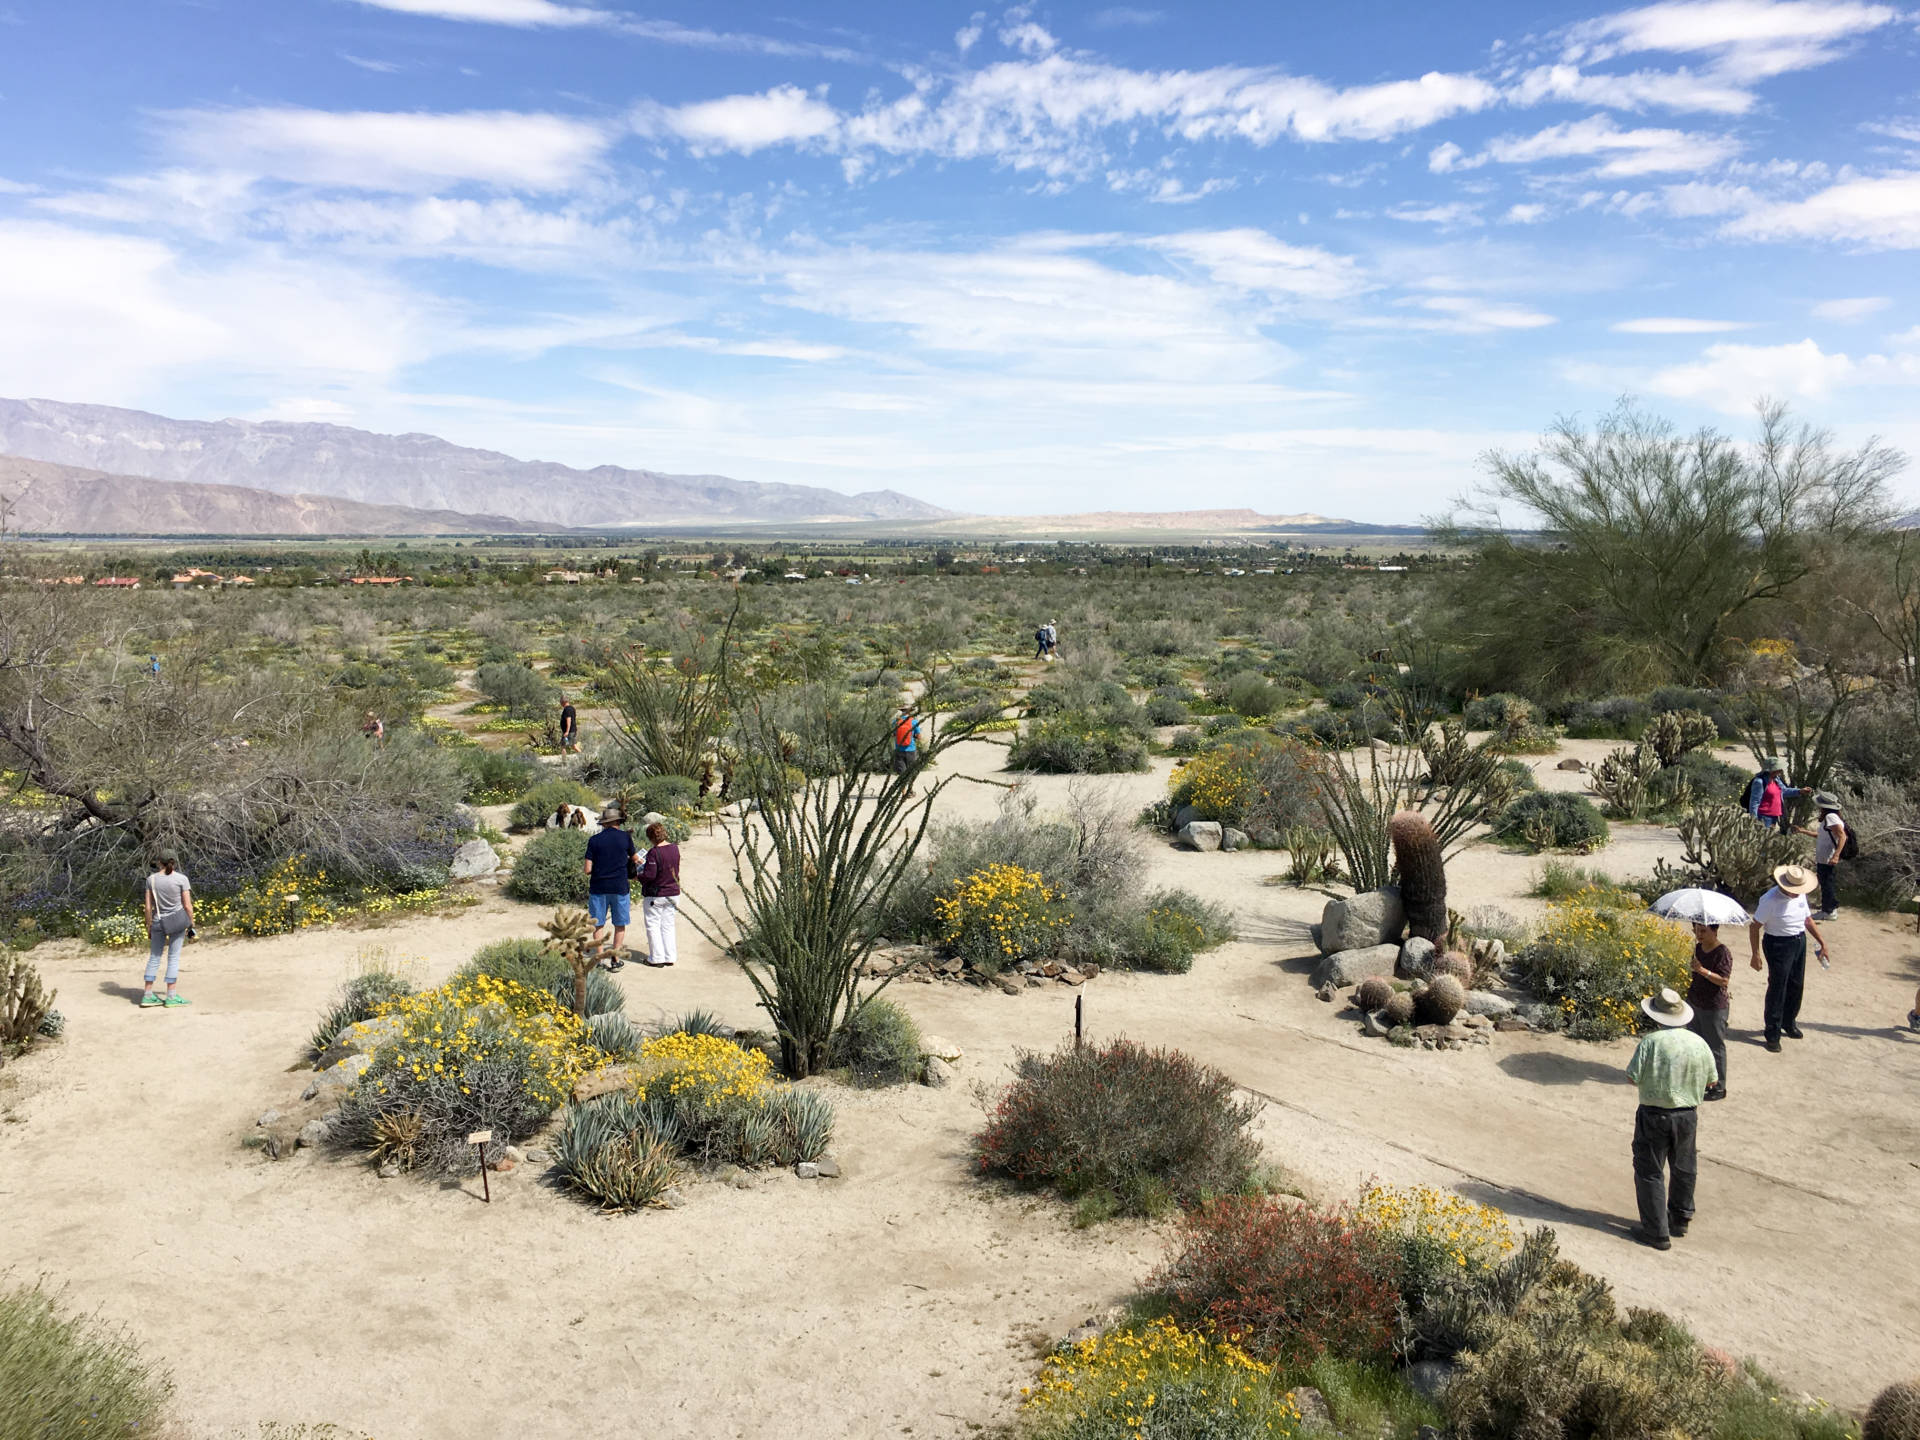 """People are scattered throughout the hills and valleys of Anza-Borrego, Califonia's largest state park, taking in the beauty of a rare """"super bloom"""" of wild flowers. NIna Gregory/NPR"""